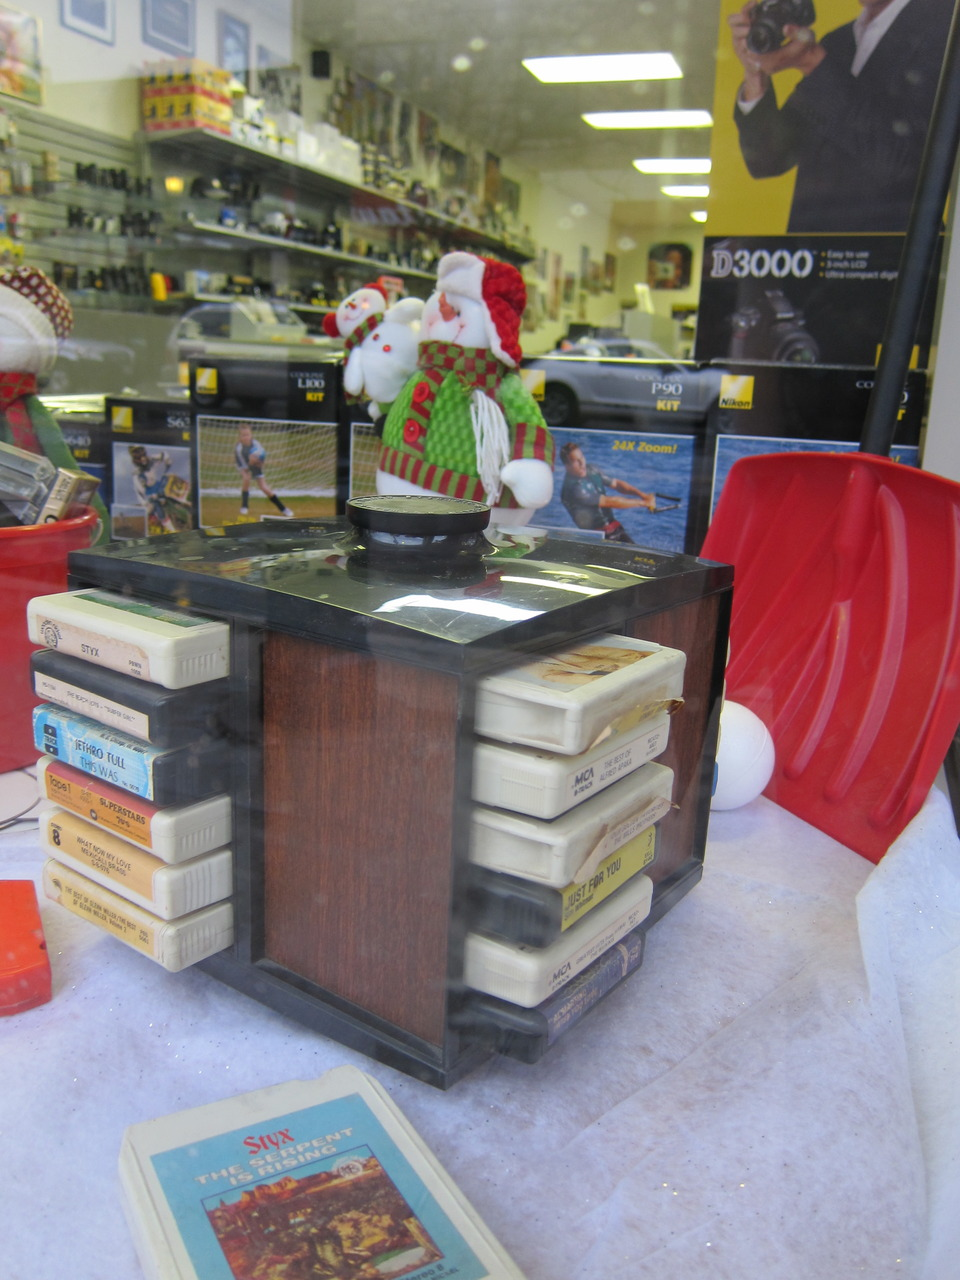 8-Tracks in a camera shop window - if these people sold metaphors, they'd be millionaires.